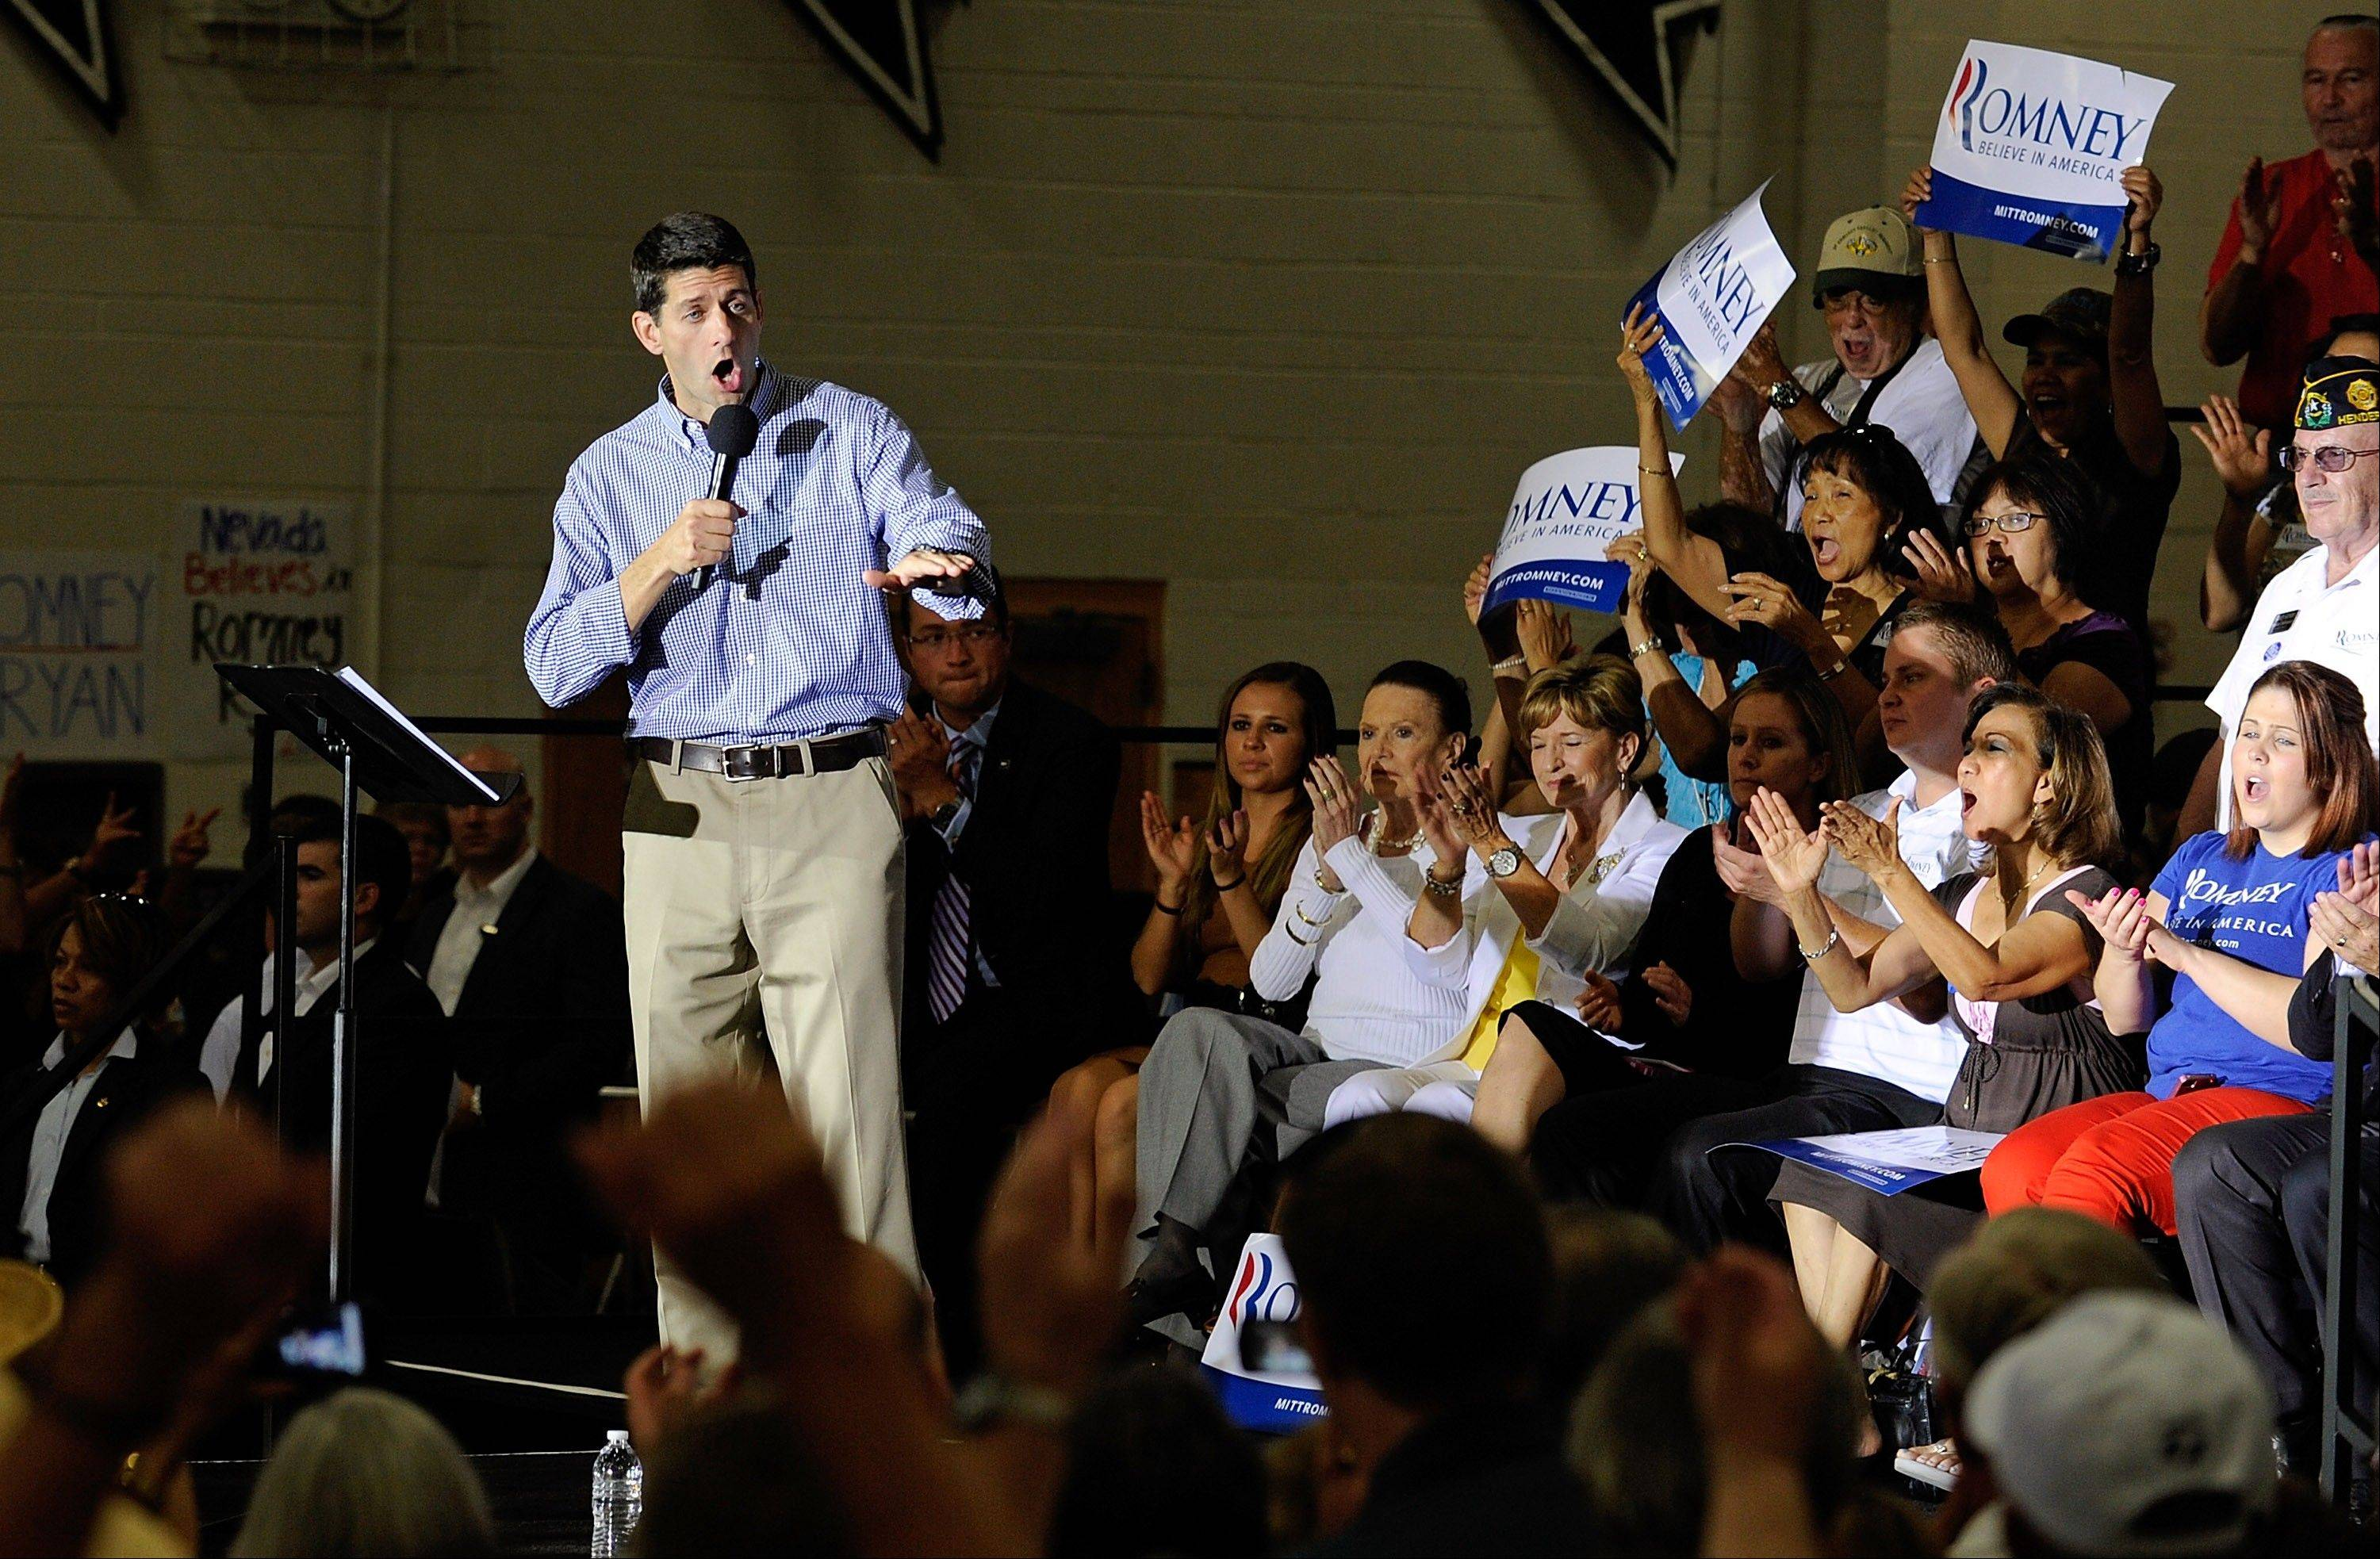 Republican vice presidential candidate Rep. Paul Ryan R-Wis., speaks during a campaign event at Palo Verde High School on Tuesday, Aug. 14, 2012 in Las Vegas.